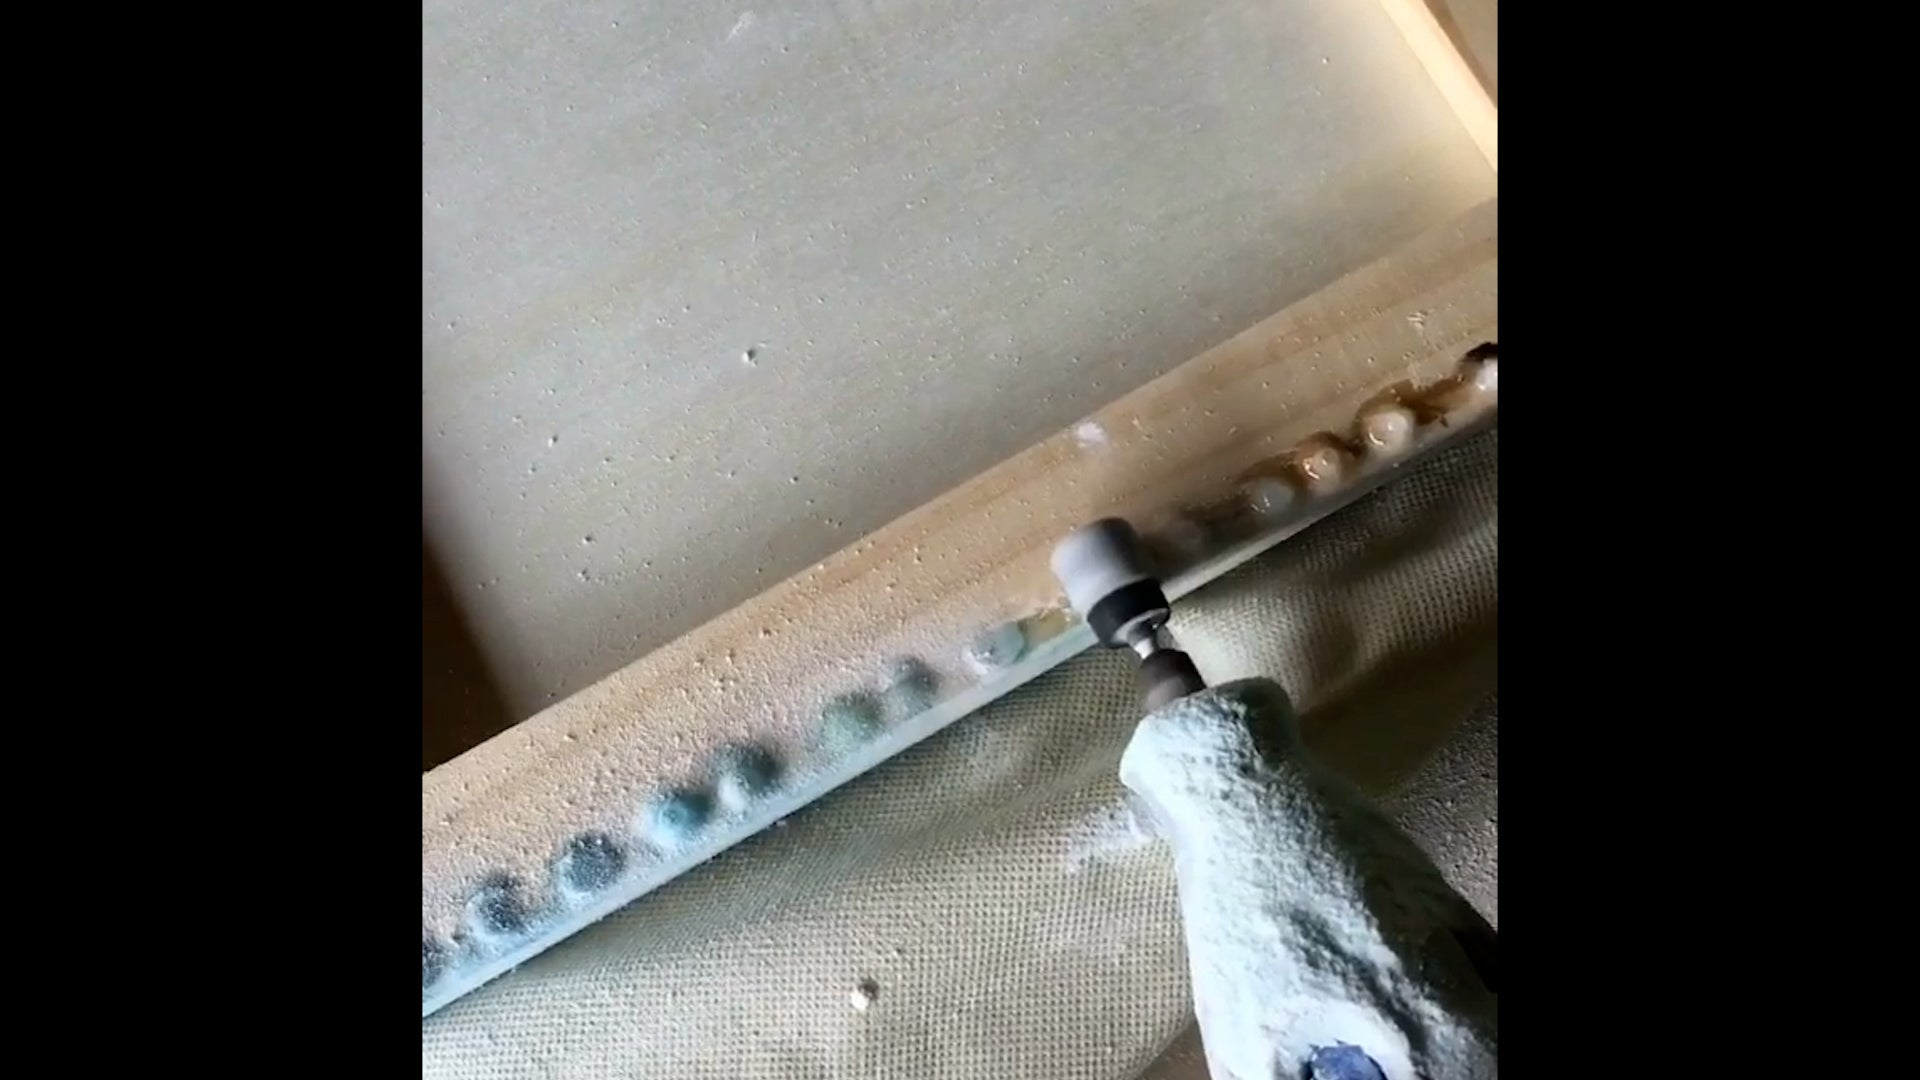 use a dremel to remove cured resin drips